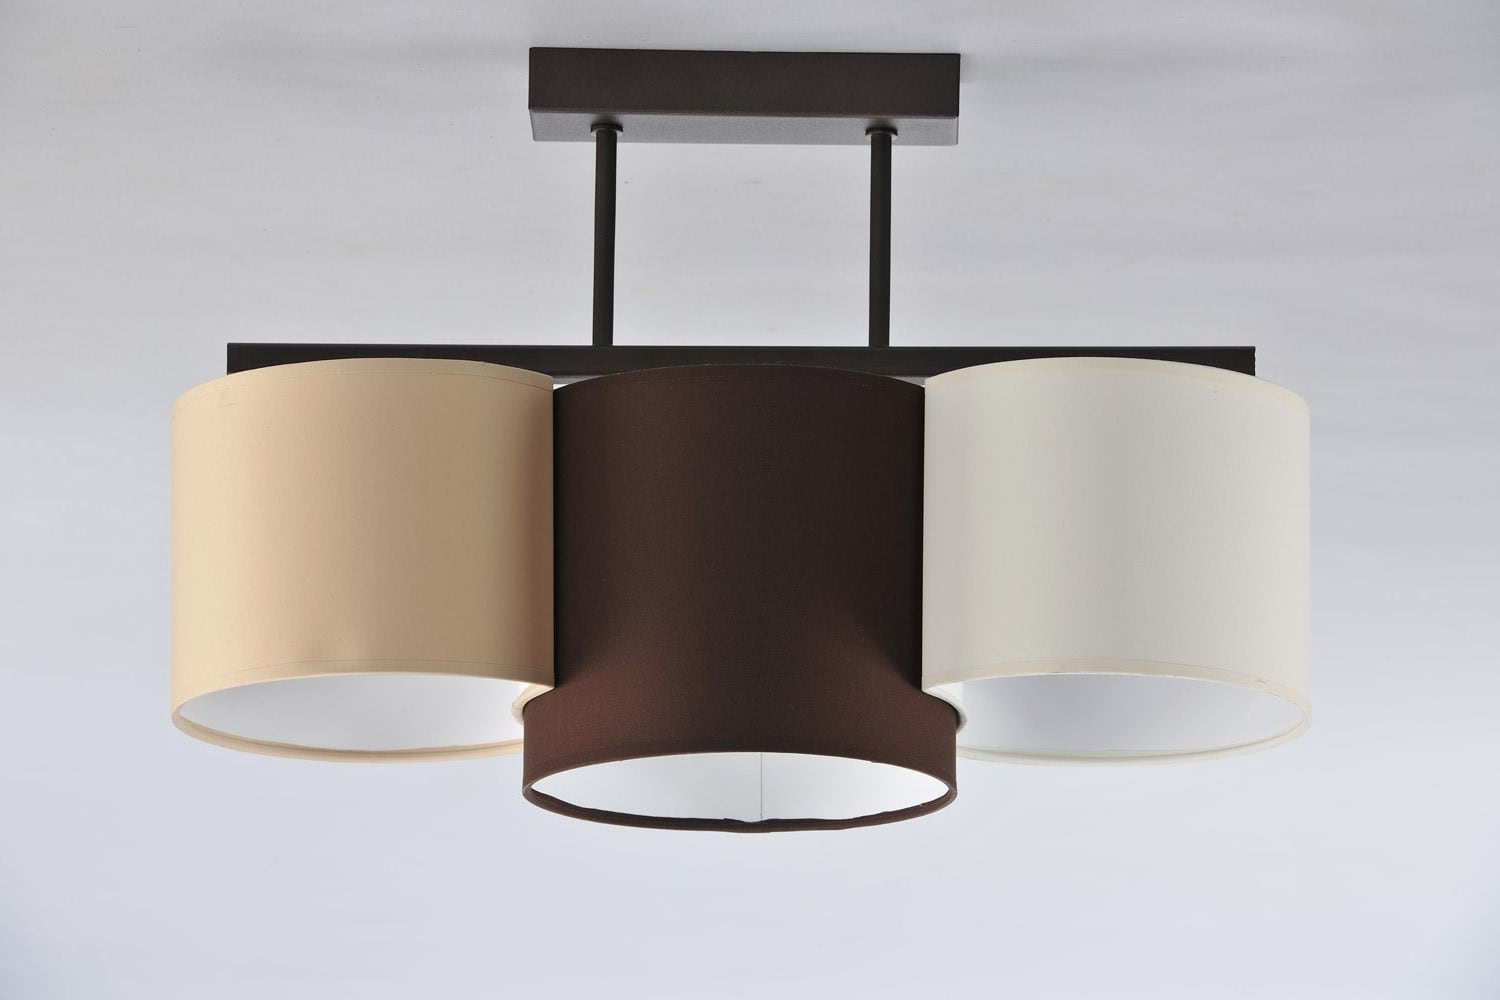 Ceiling lamp ZMIERZCH No. 3670